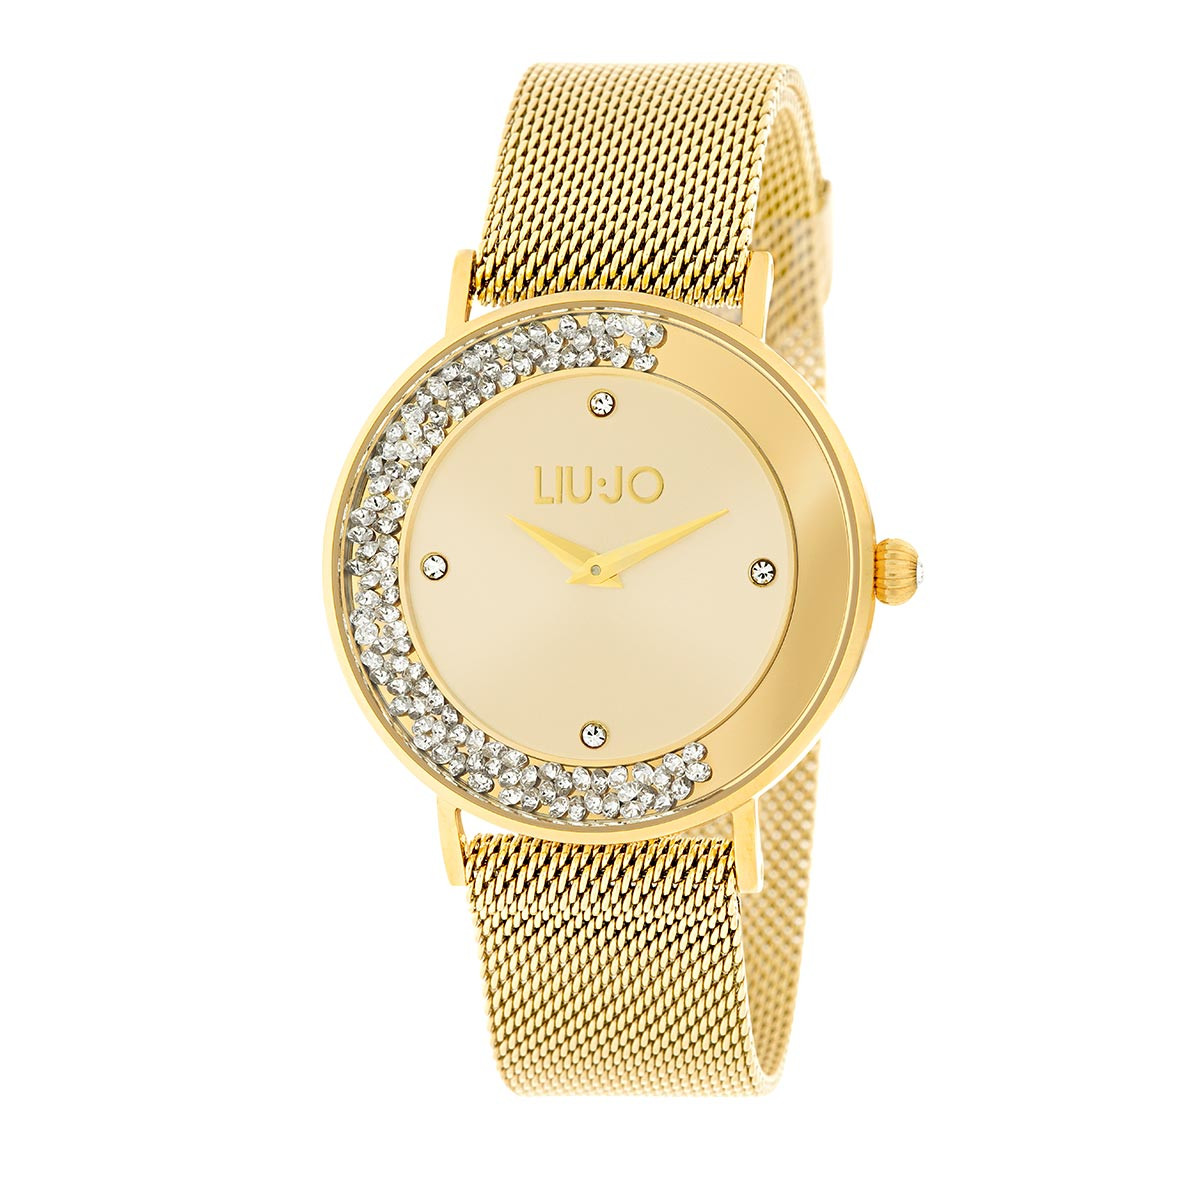 LIU JO Dancing Slim IP Gold 36mm